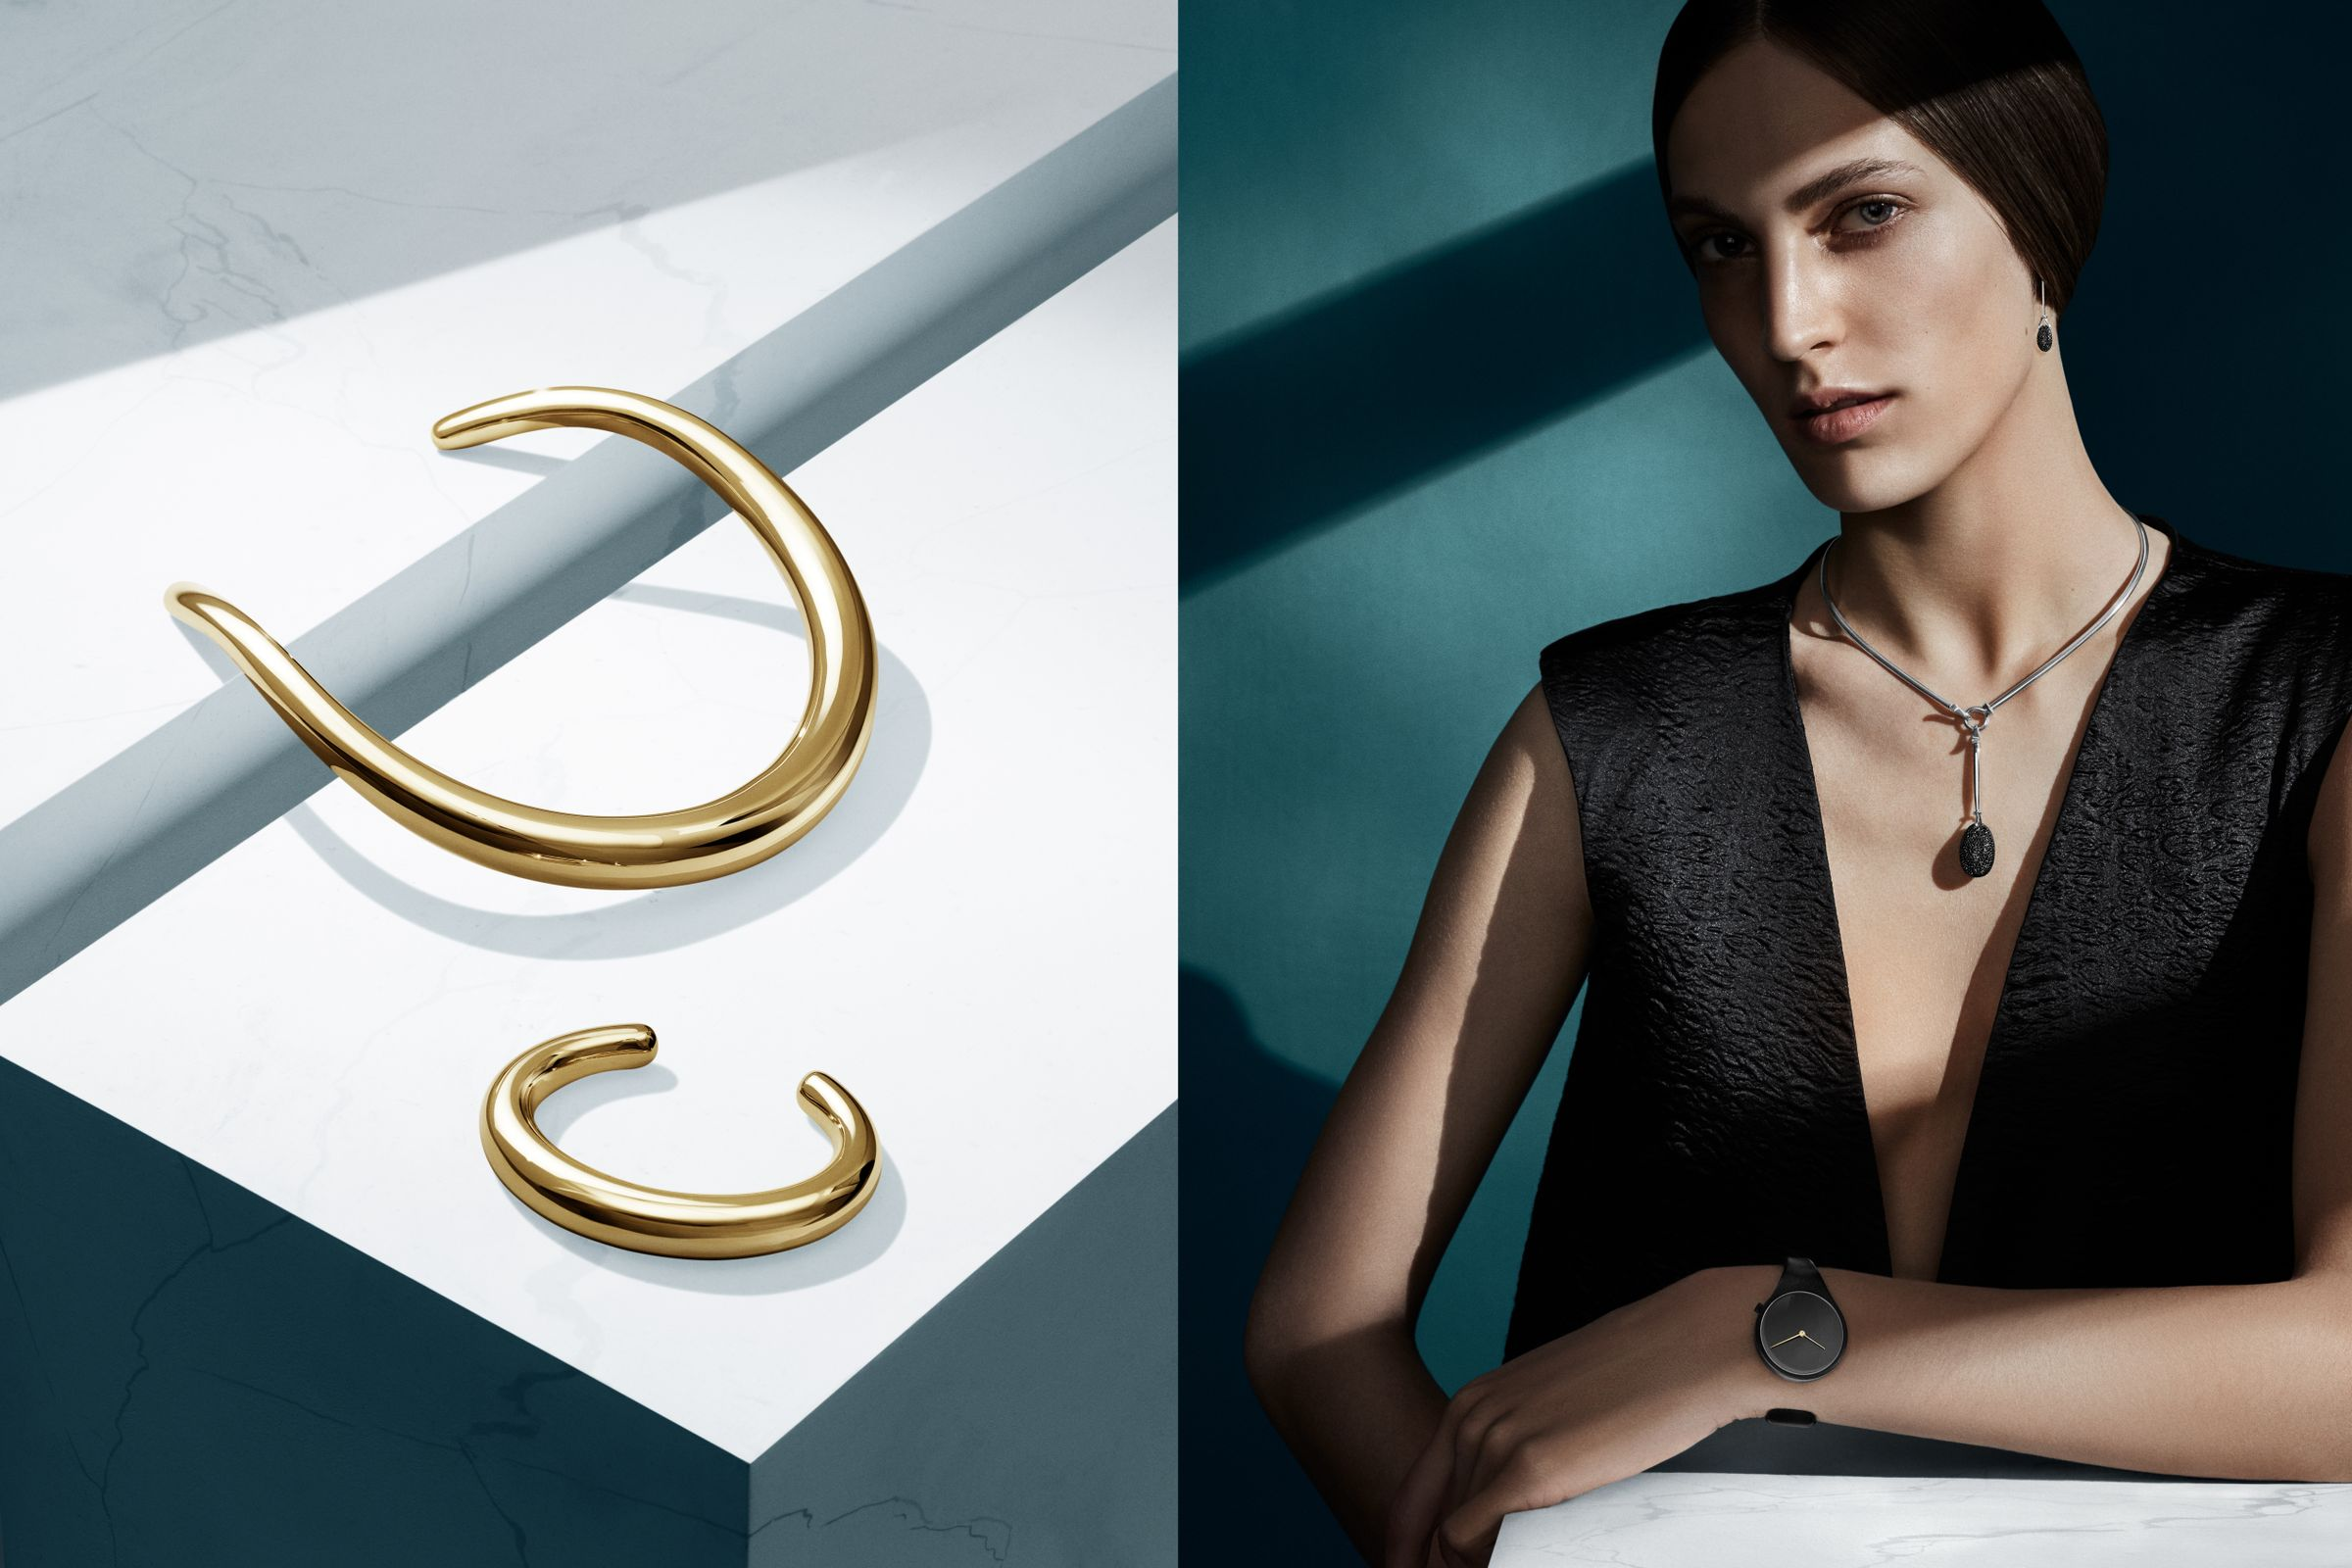 Georg Jensen campaign photographed by Hasse Nielsen